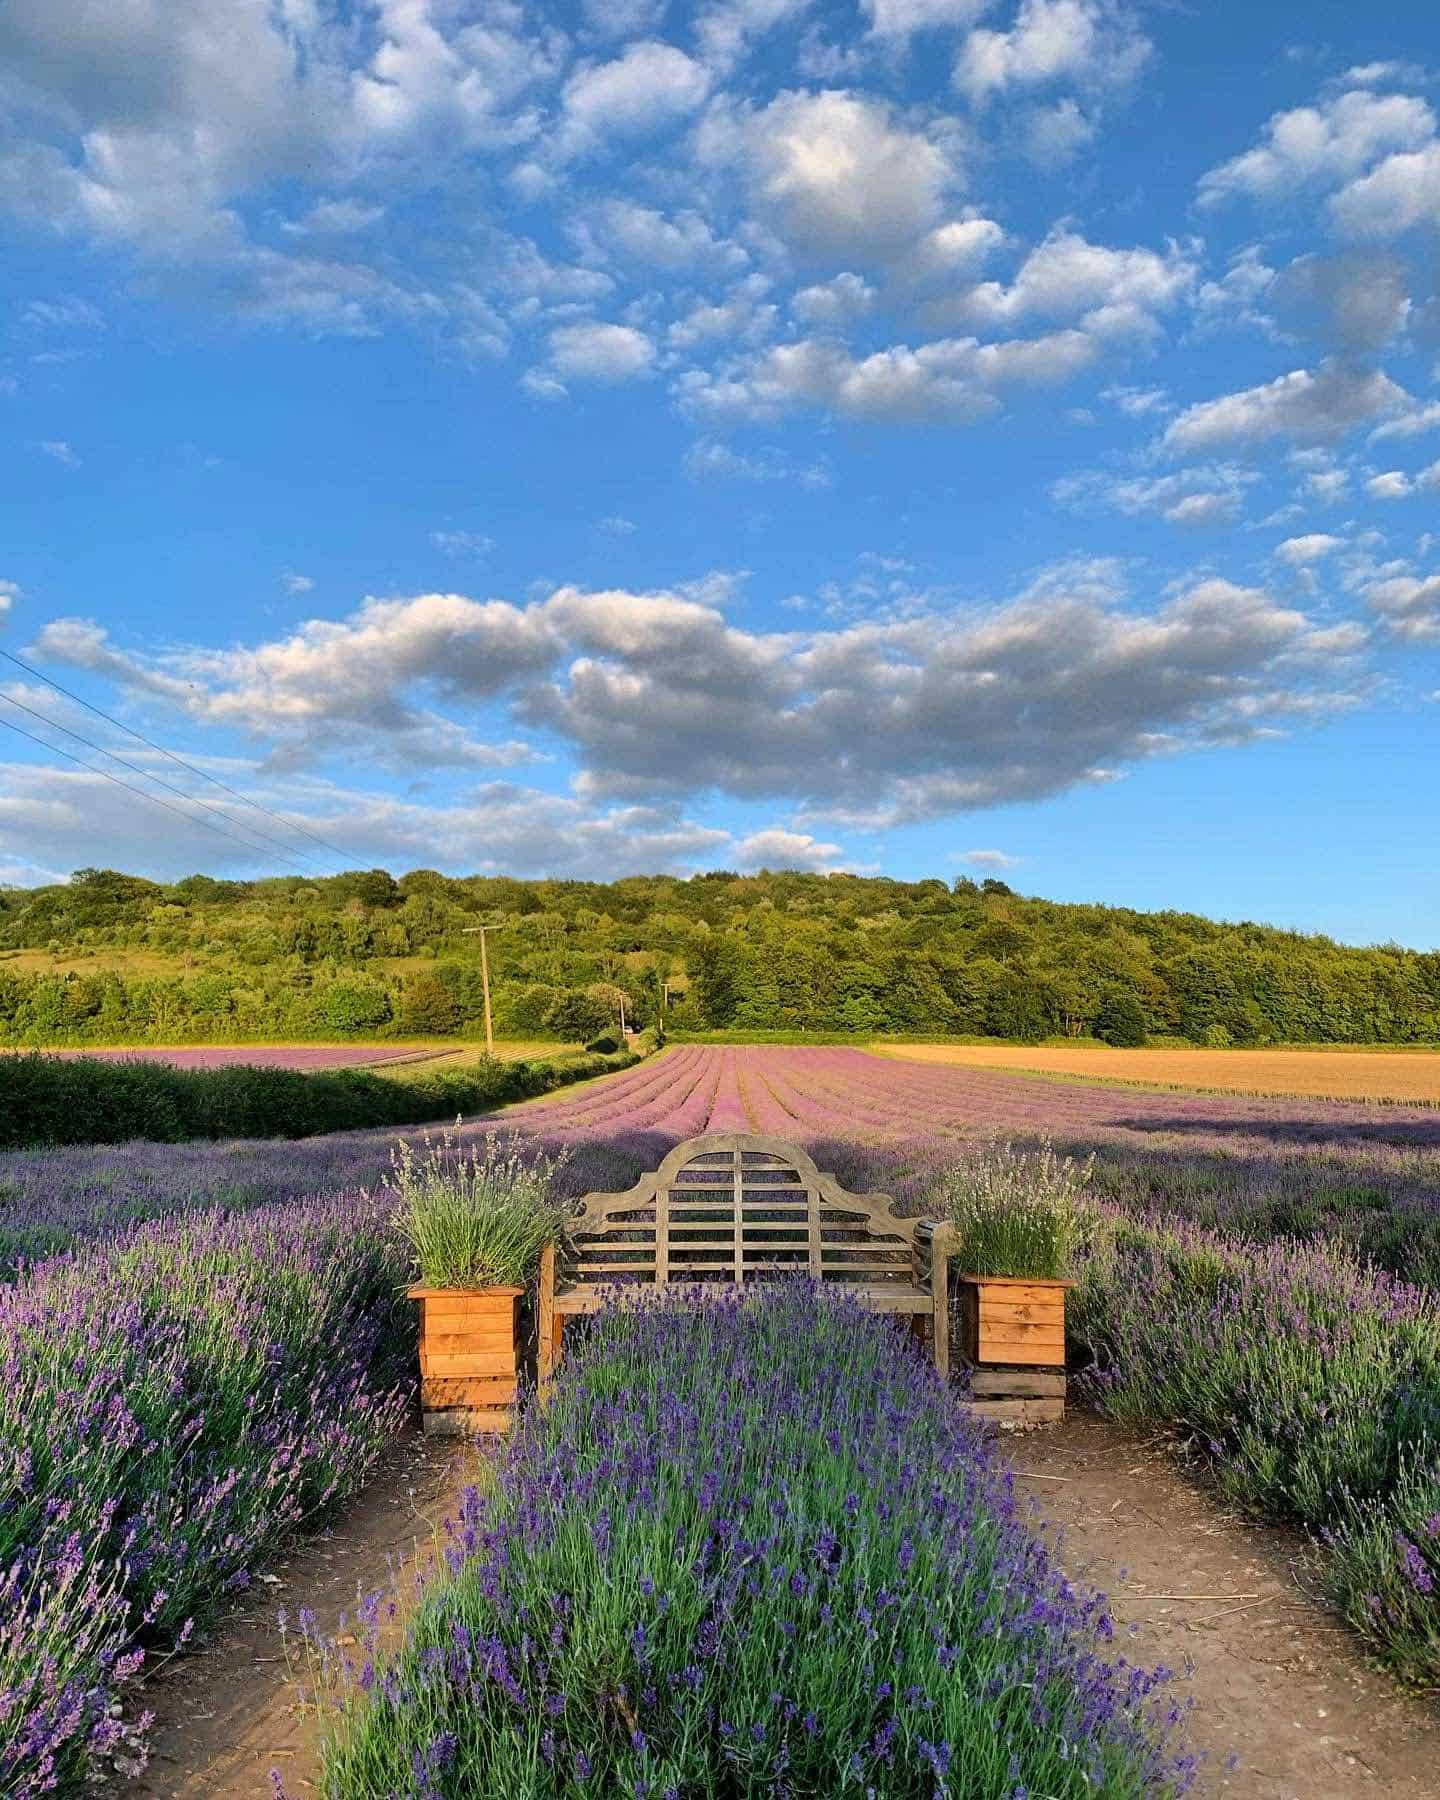 Dog-friendly Lavender Fields Near London To Visit - Castle Farm Lavender Fields Await